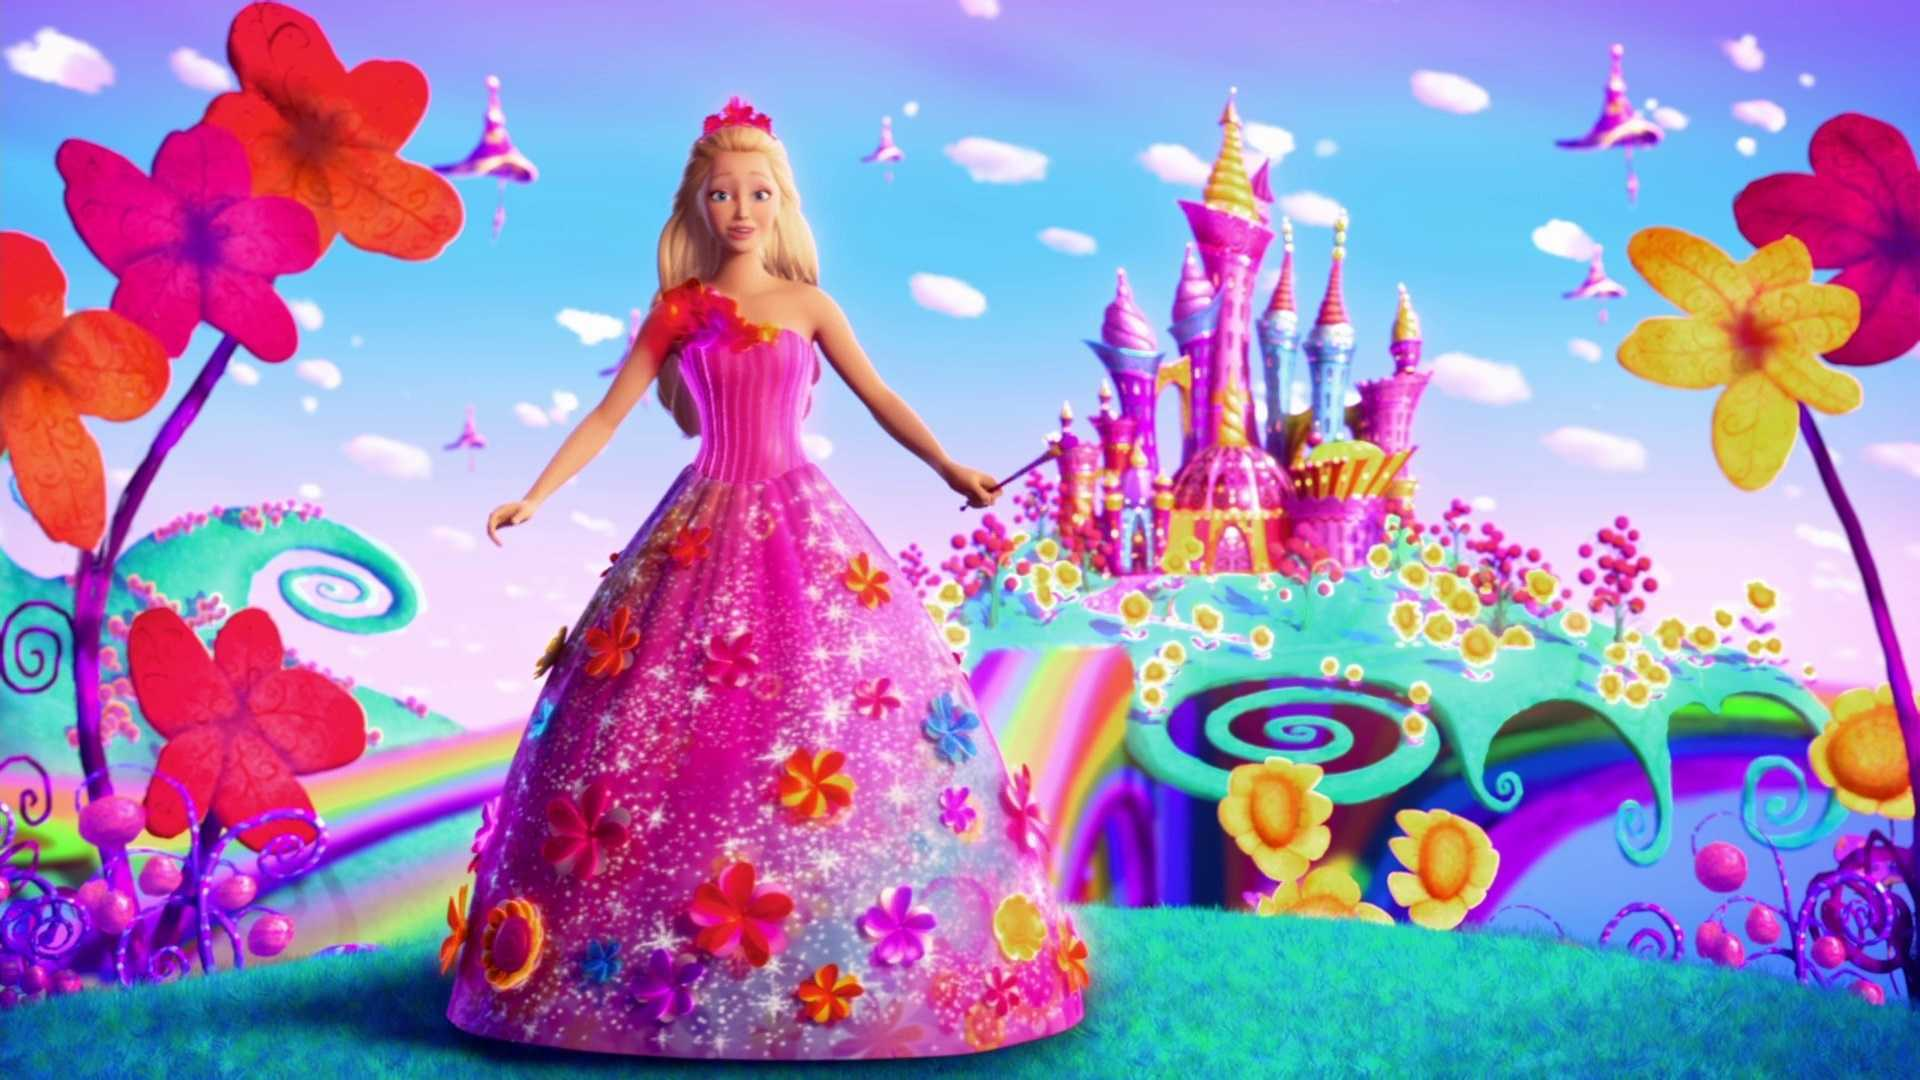 barbie wallpaper Google Search Avatars and Backgrounds